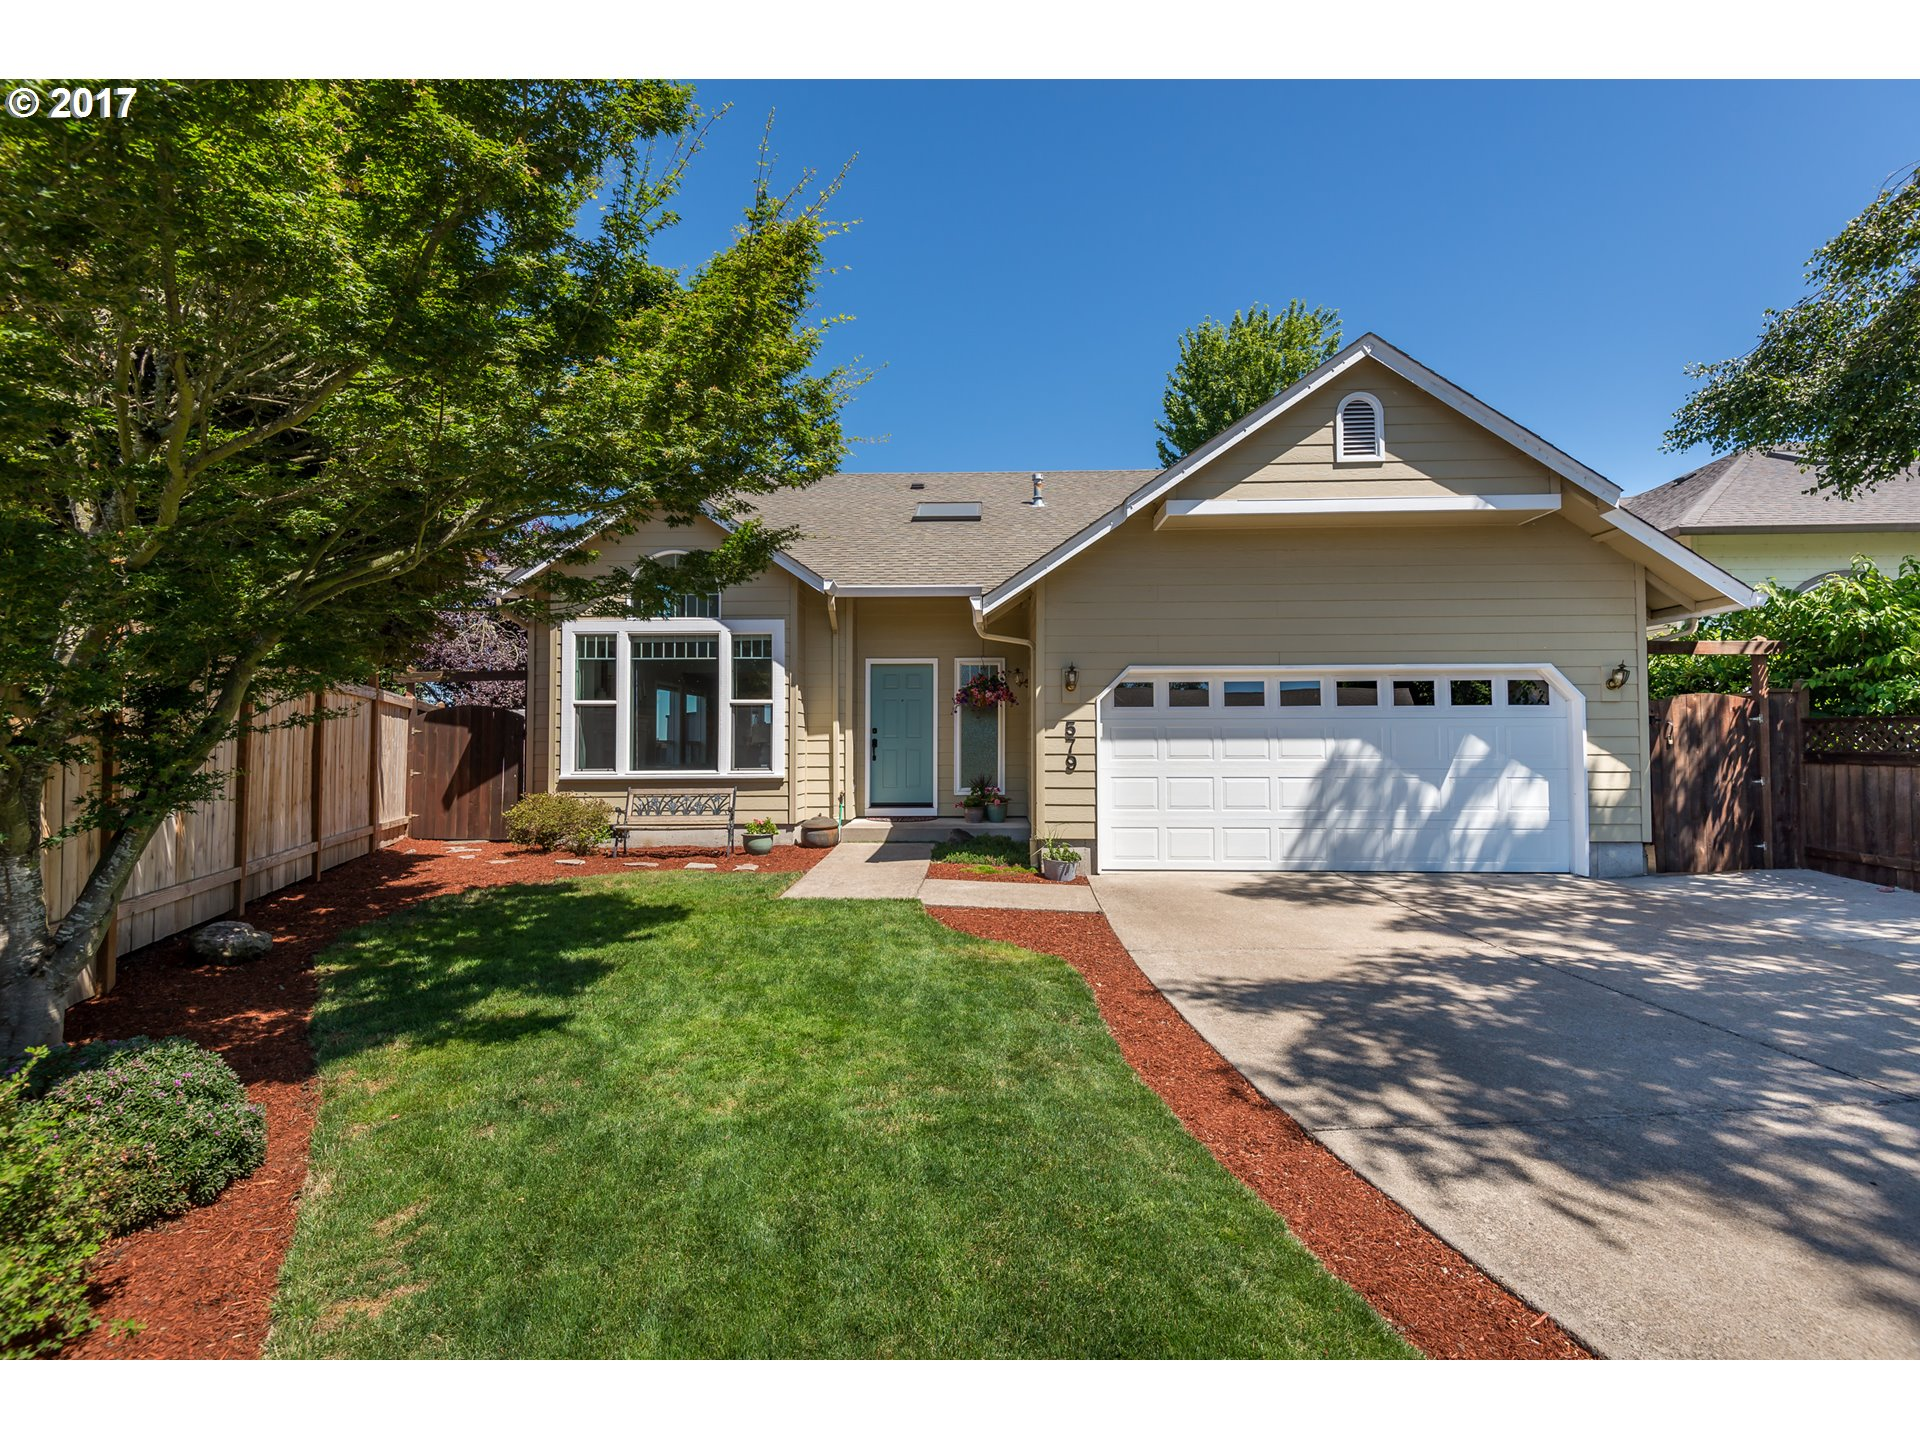 579 SWEETWATER LN, Eugene, OR 97404